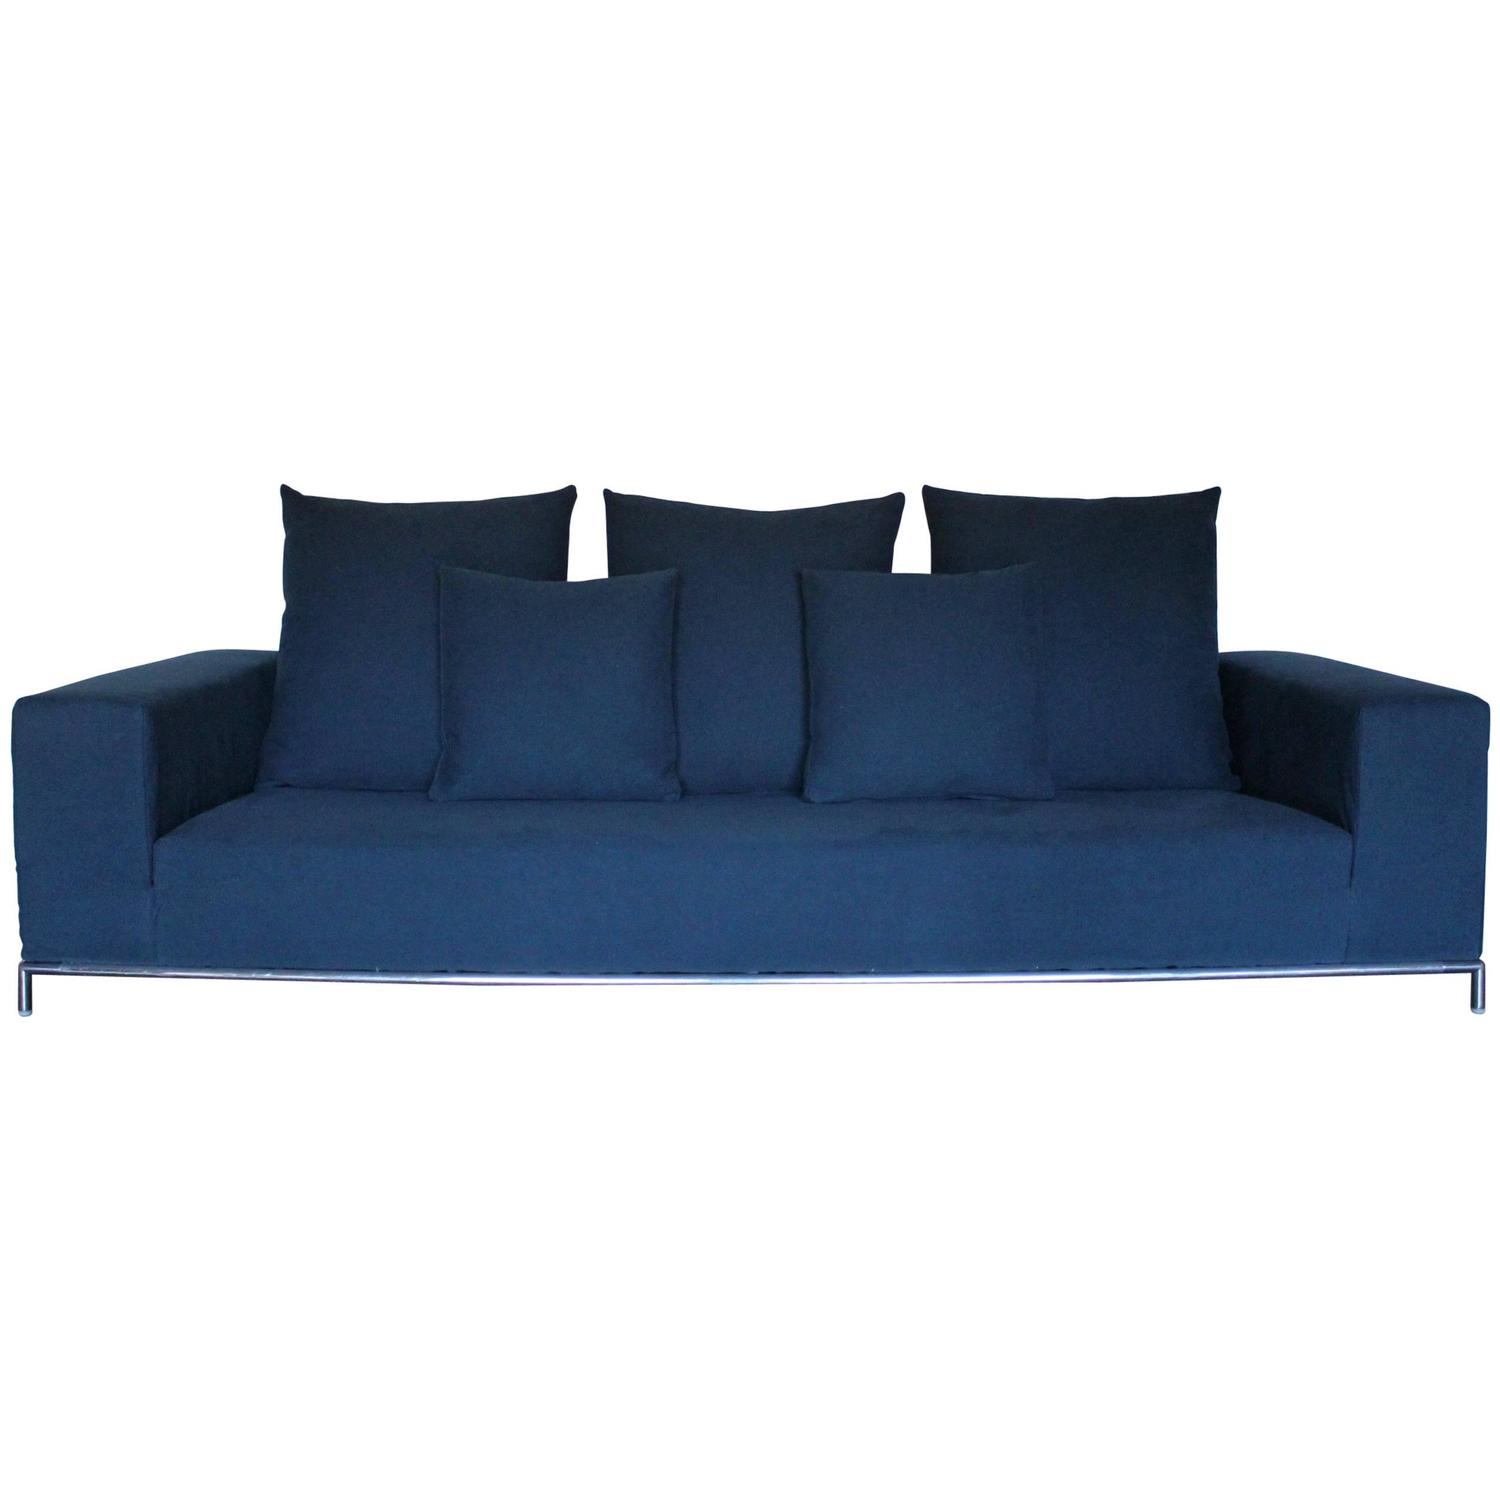 b b italia george four seat sofa in mid blue linen fabric by antonio citterio for sale at 1stdibs. Black Bedroom Furniture Sets. Home Design Ideas